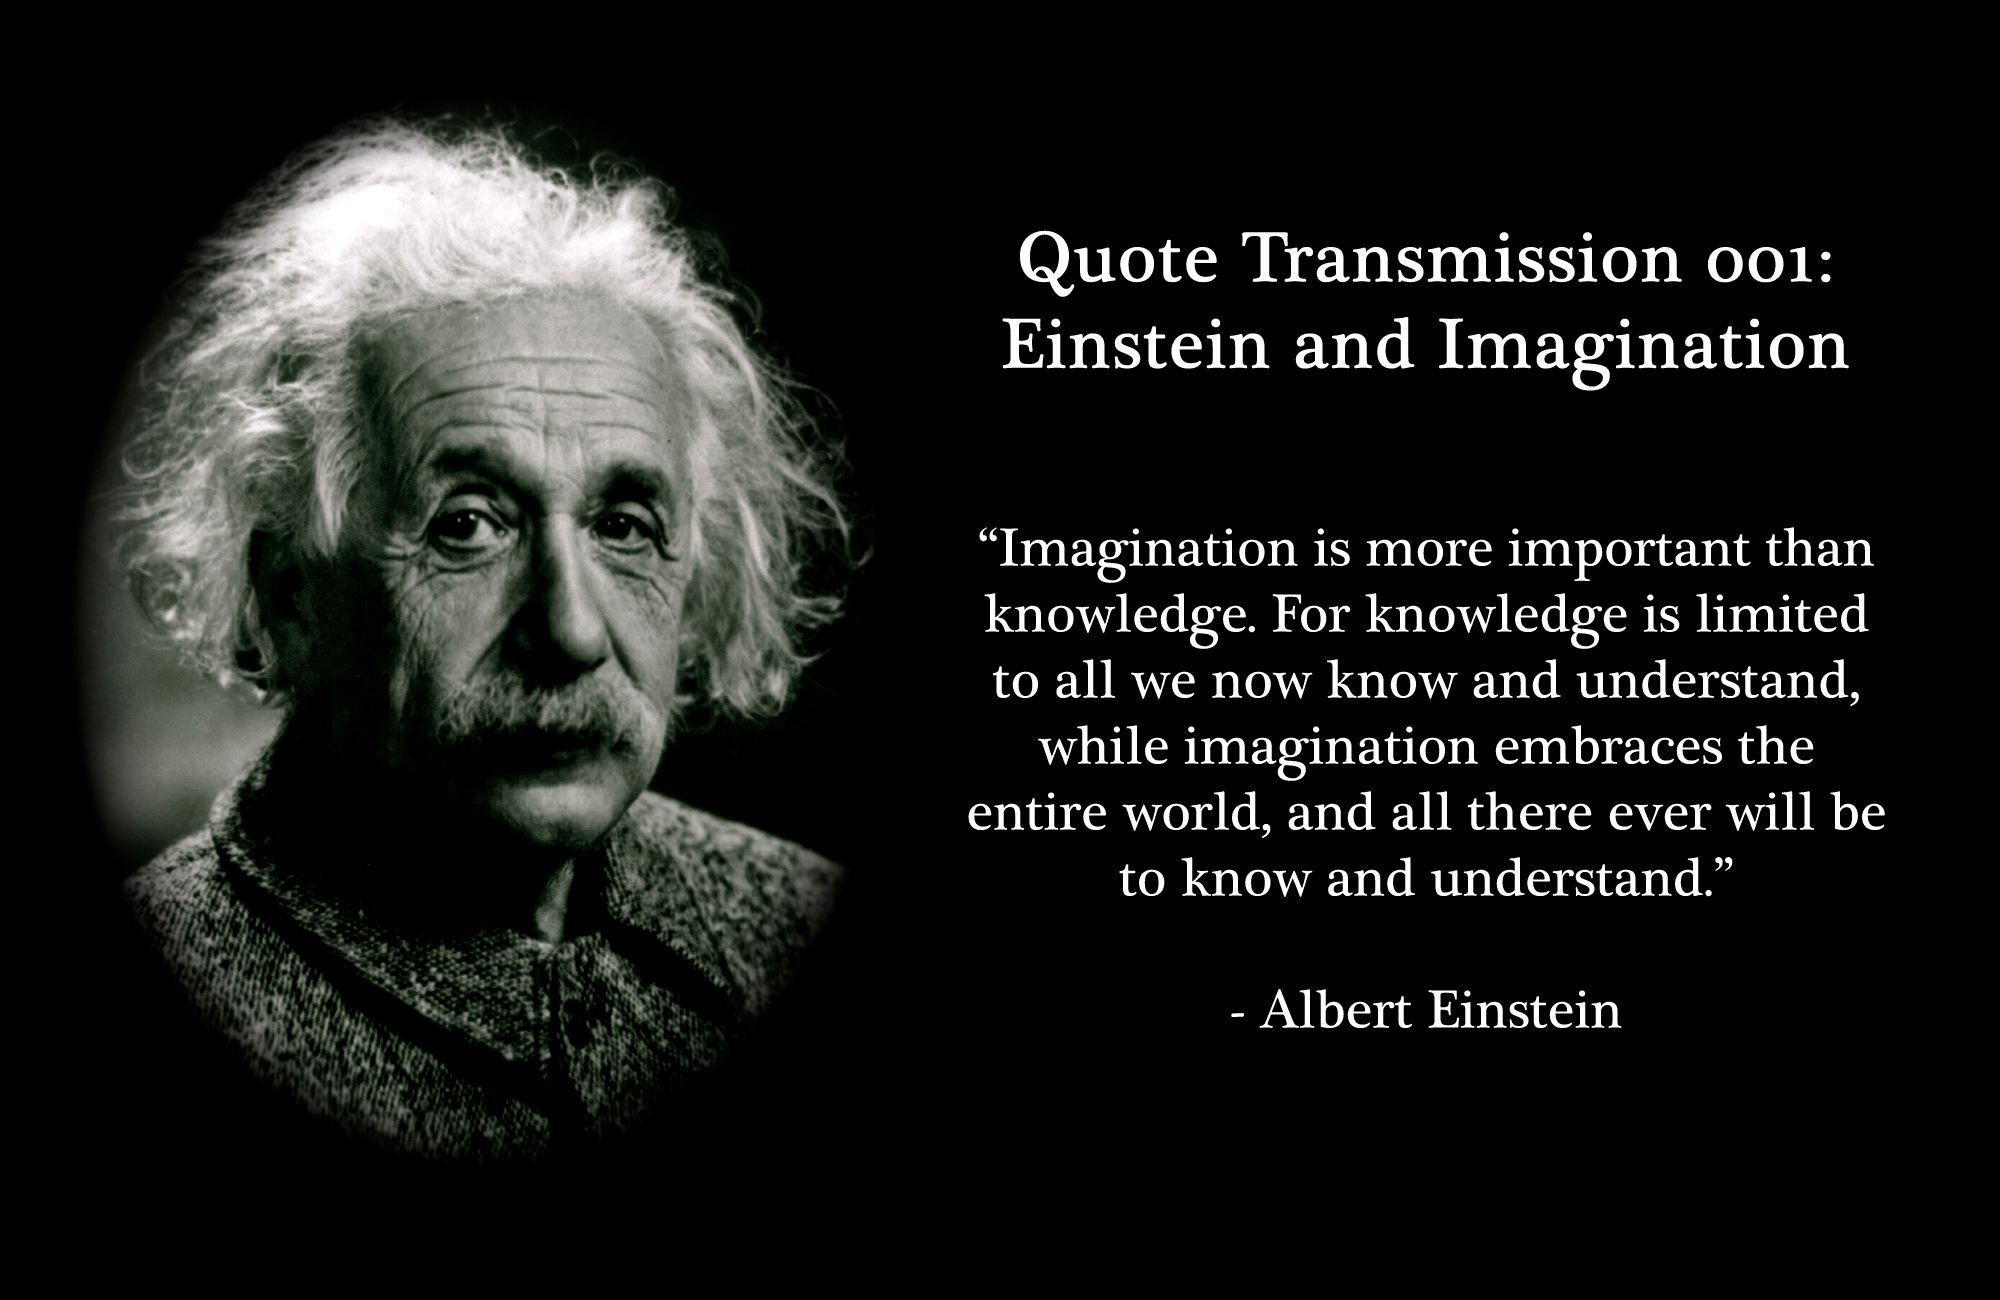 Albert Einstein Famous Quotes With Images Spreuken en